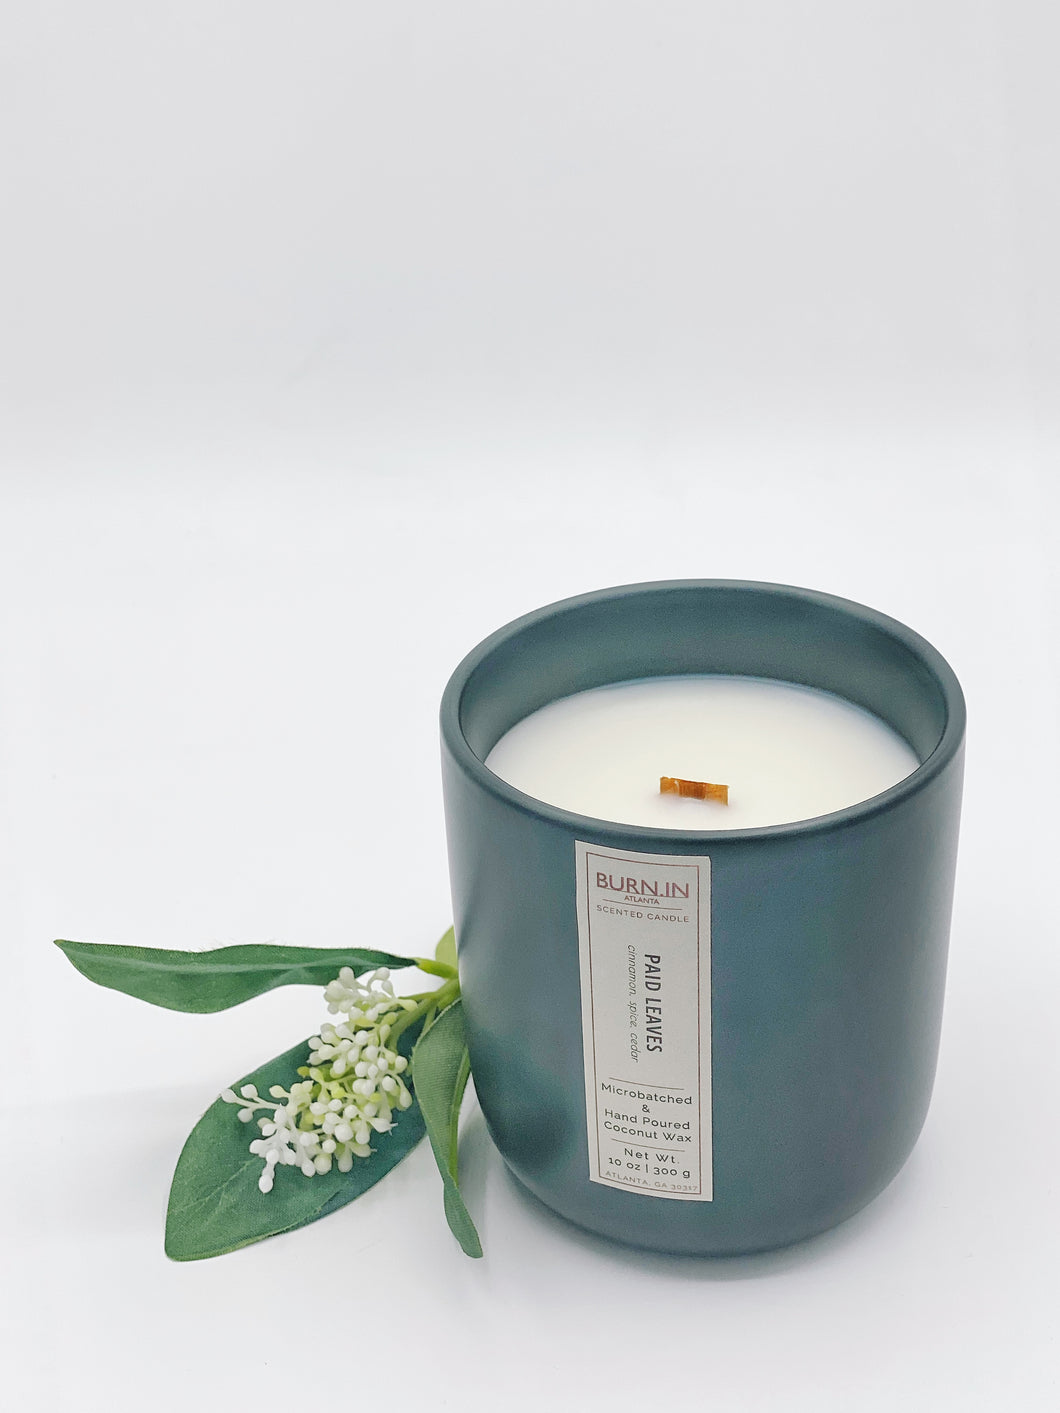 The 'Paid Leaves' Ceramic Candle